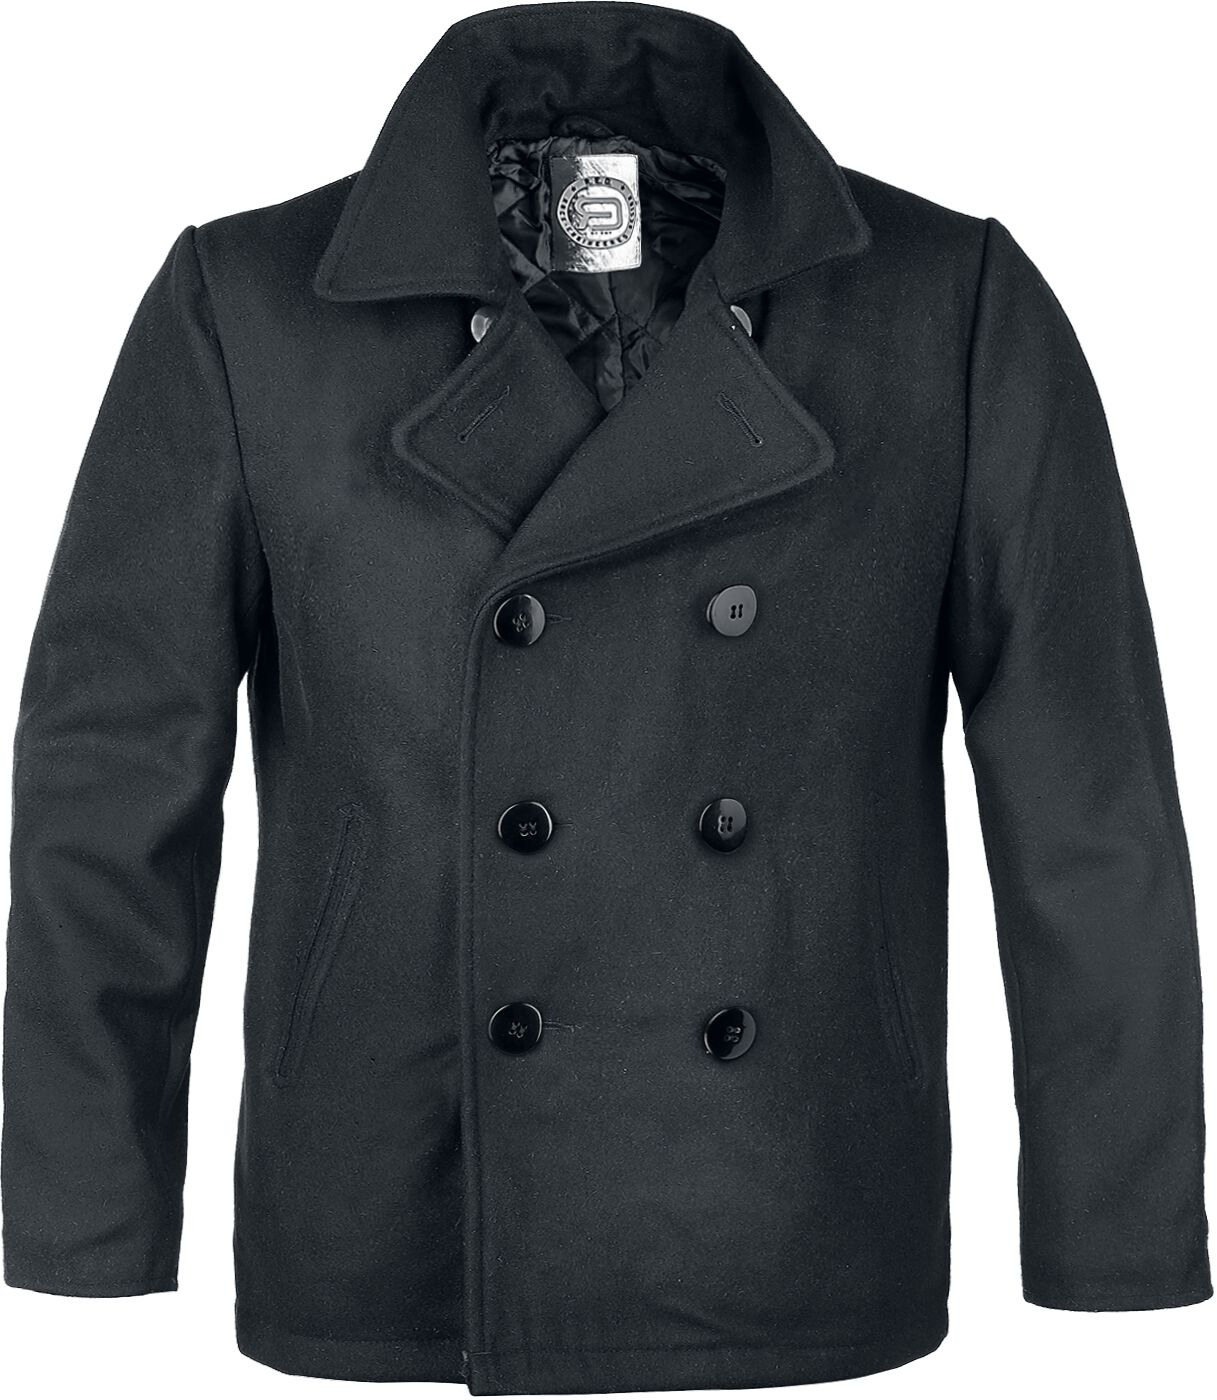 The Sterlingwear Authentic Peacoat features: